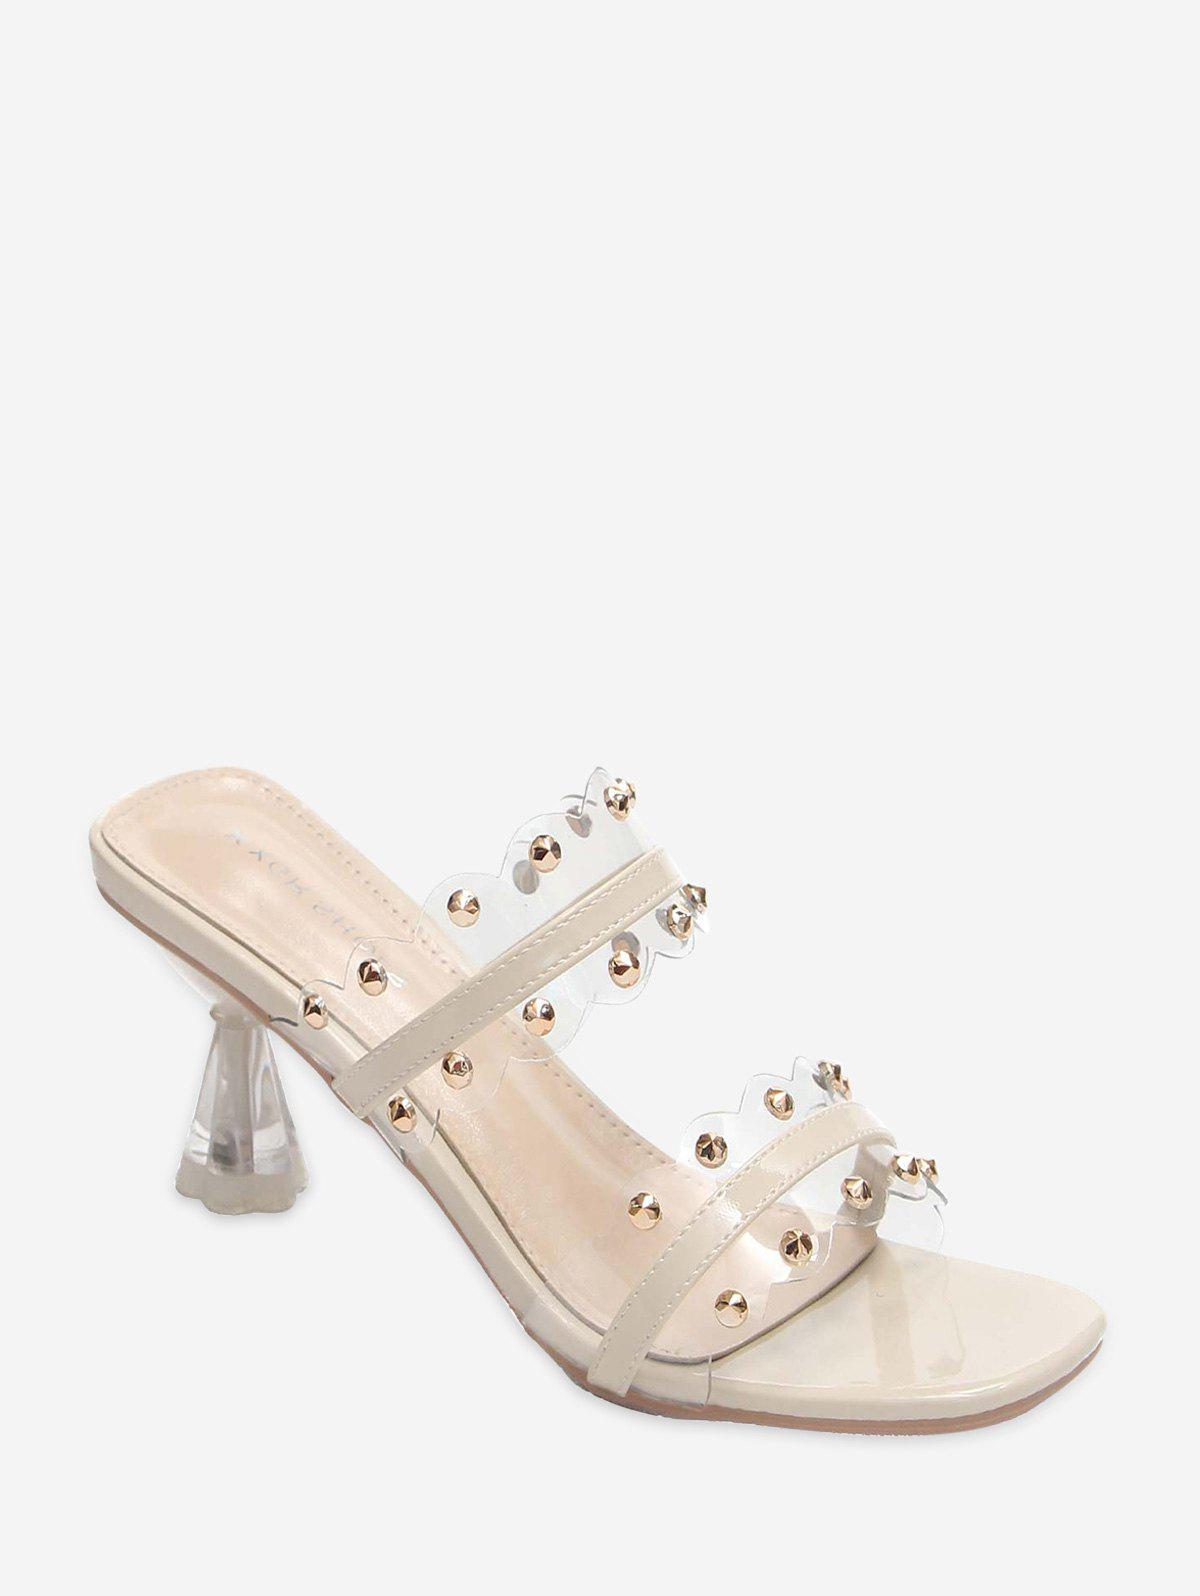 Clear Dual Strap Mid Heel Slides With Studs - BEIGE EU 39